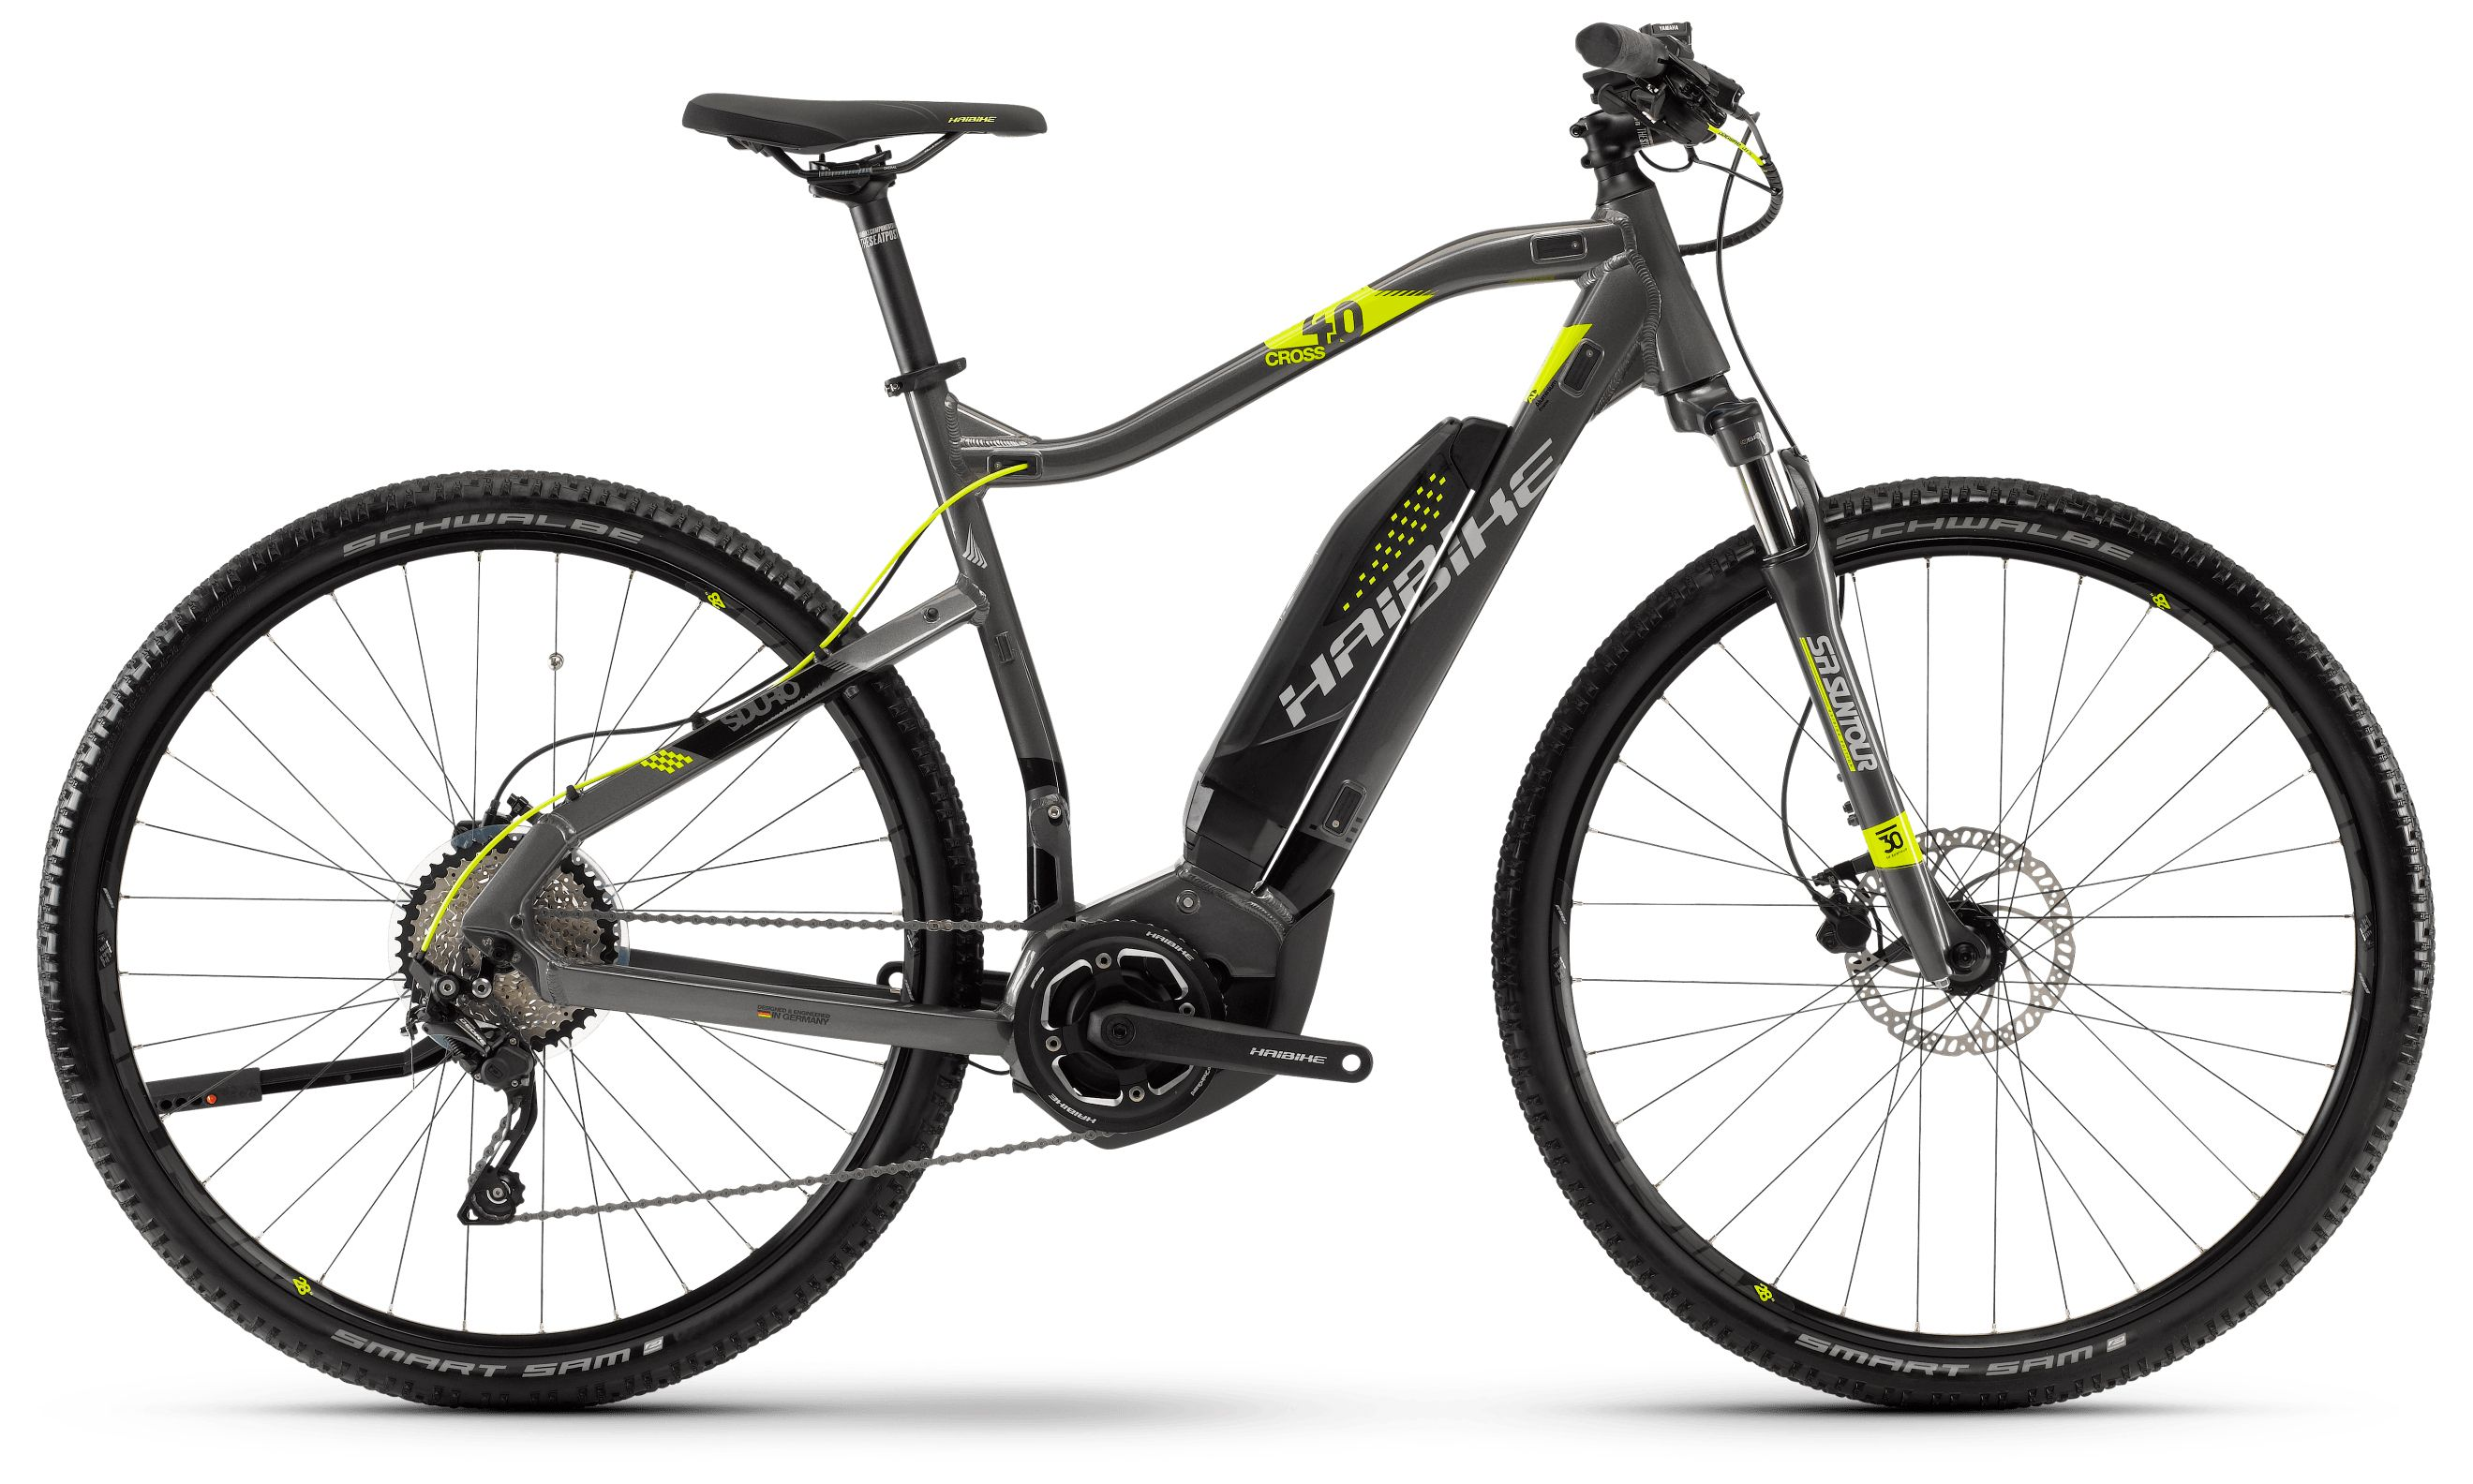 Велосипед Haibike Sduro Cross 4.0 men 400Wh 10s Deore 2018,  Городские  - артикул:288647